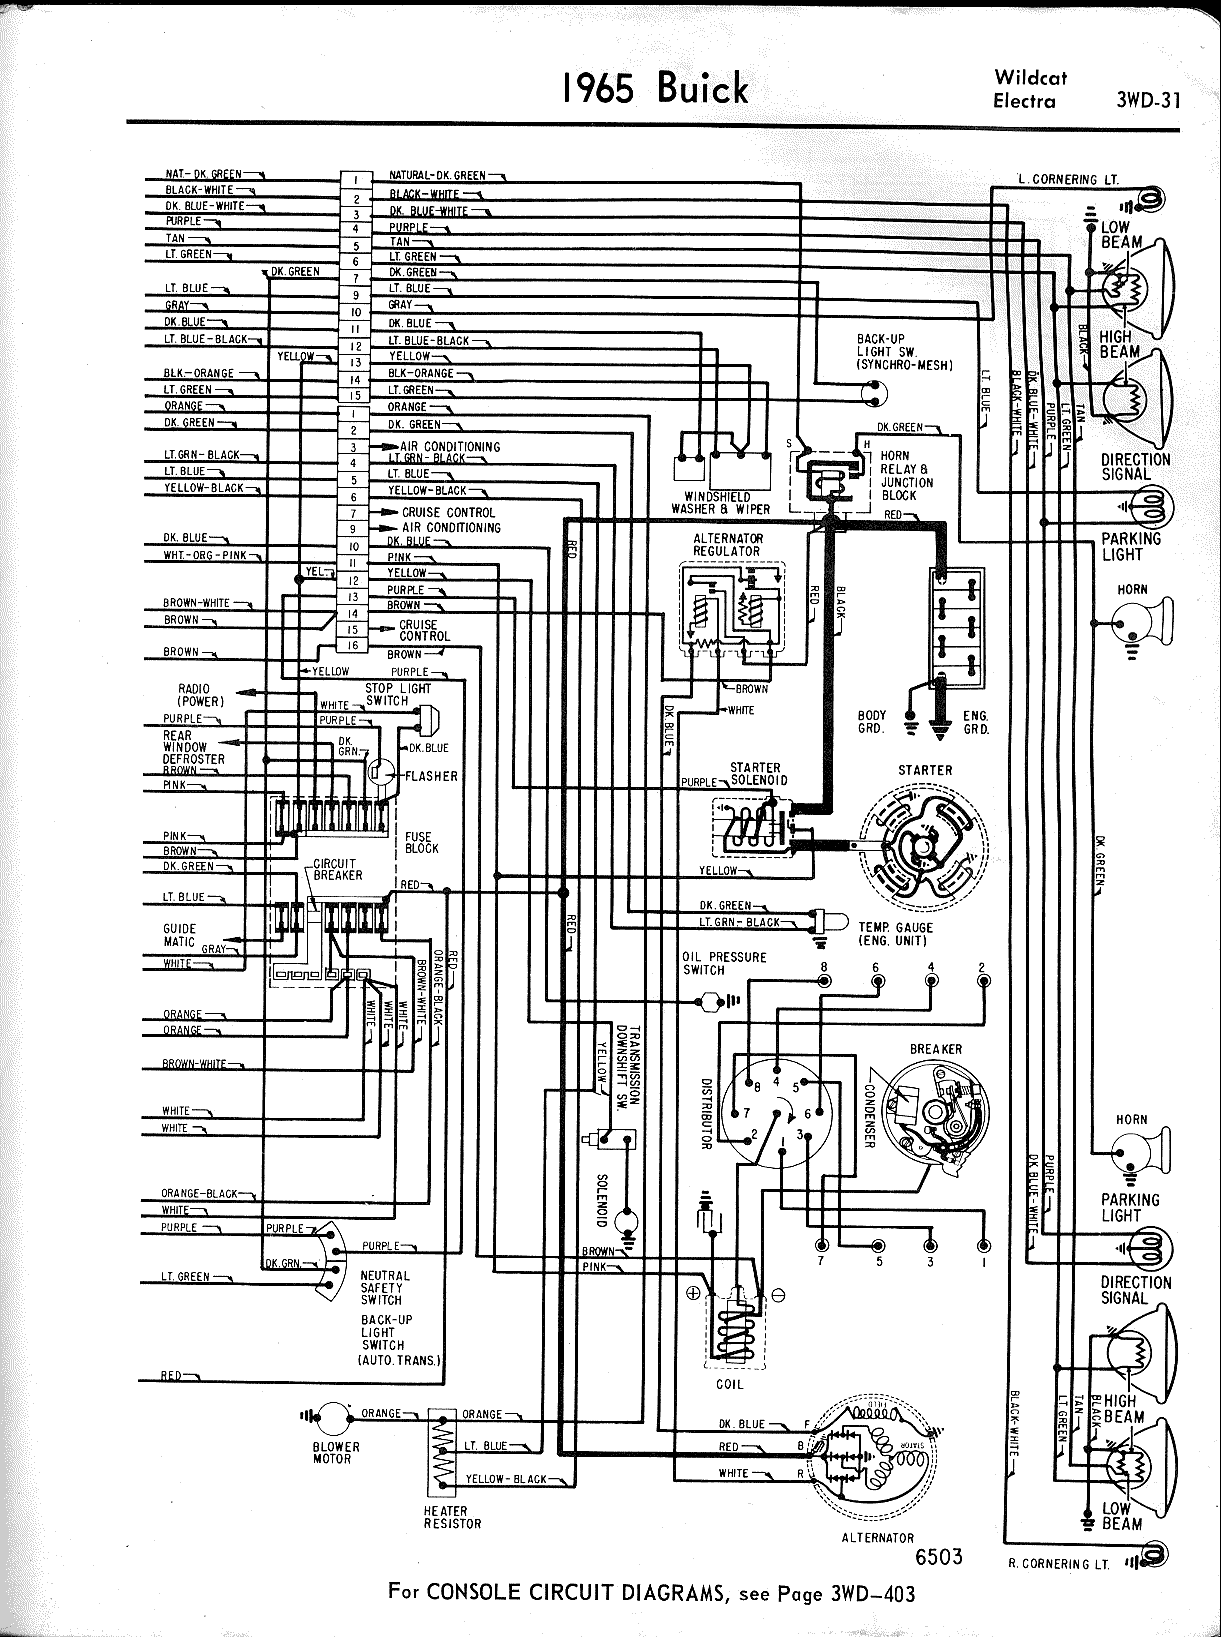 Buick Wiring Diagrams 1957 1965 1991 Pontiac 3 1l Engine Diagram Wildcat Electra Left Half